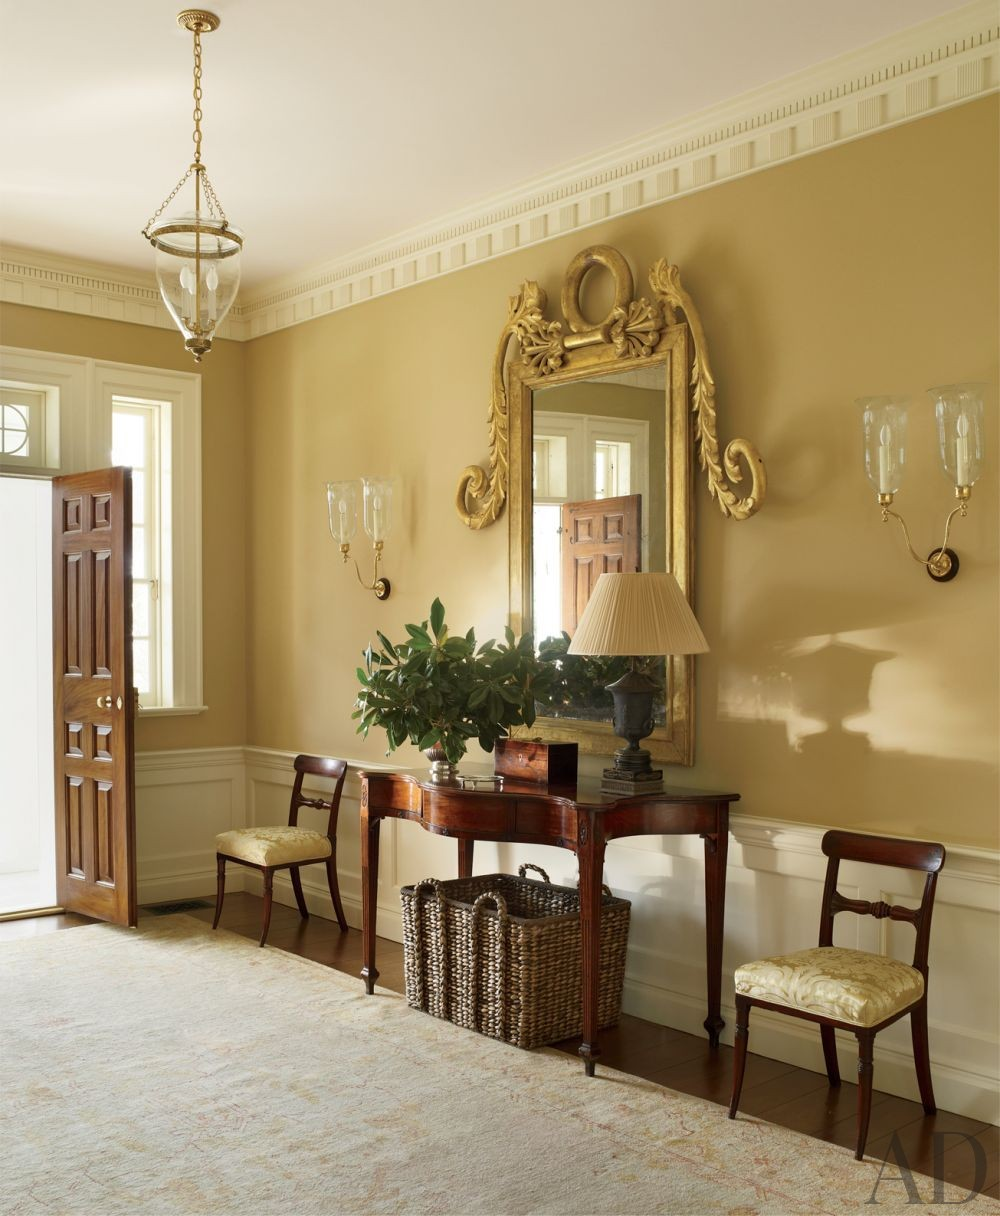 Traditional Entrance Hall by Amelia T. Handegan Inc. and Tidewater Preservation Inc. in Rappahannock Valley, Virginia